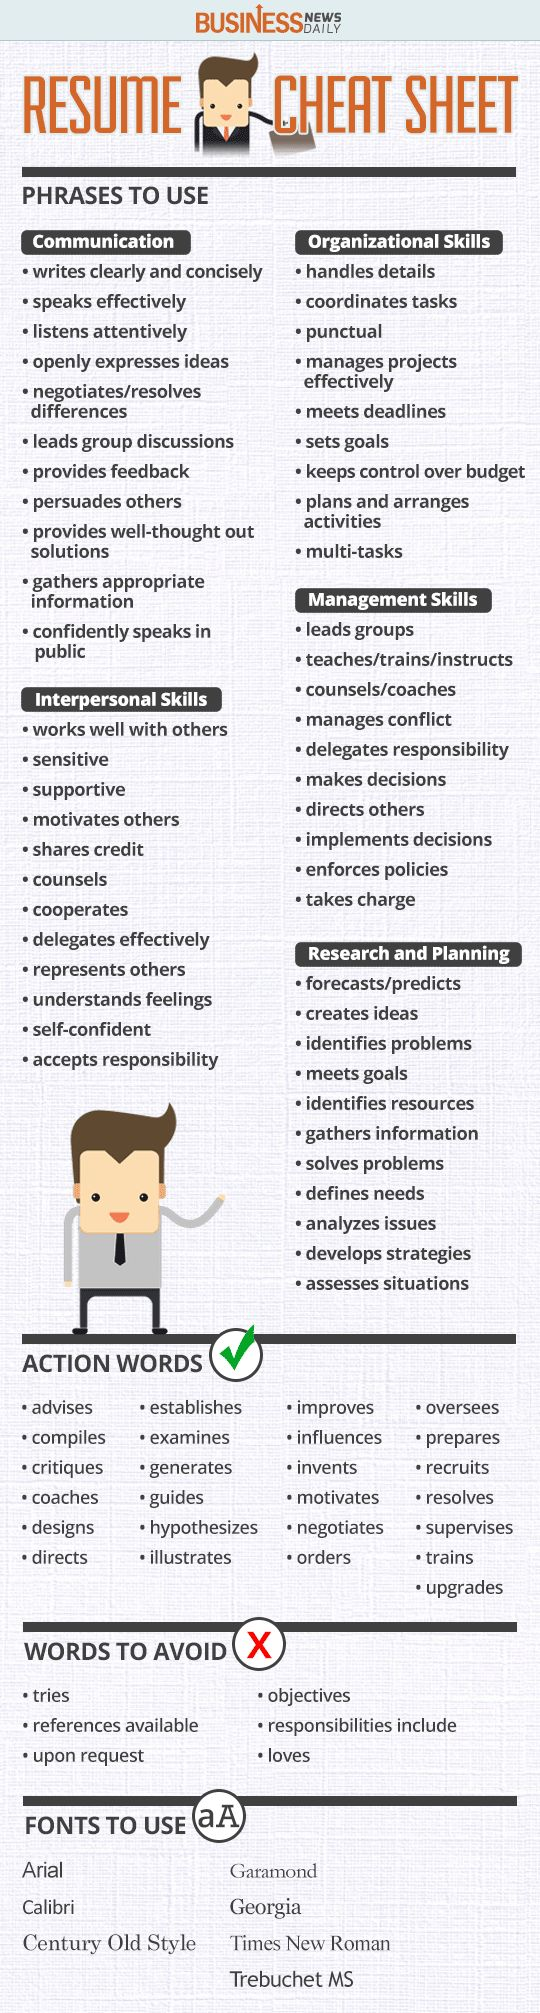 Opposenewapstandardsus  Seductive  Ideas About Resume On Pinterest  Cv Format Resume Cv And  With Marvelous Resume Cheat Sheet Infographic Andrews Almost Done With A Complete Unit On Employment Which With Adorable Resume Strong Also It Resume Summary In Addition Video Resume Website And Business Analyst Resume Objective As Well As Infrastructure Project Manager Resume Additionally Director Of Finance Resume From Pinterestcom With Opposenewapstandardsus  Marvelous  Ideas About Resume On Pinterest  Cv Format Resume Cv And  With Adorable Resume Cheat Sheet Infographic Andrews Almost Done With A Complete Unit On Employment Which And Seductive Resume Strong Also It Resume Summary In Addition Video Resume Website From Pinterestcom